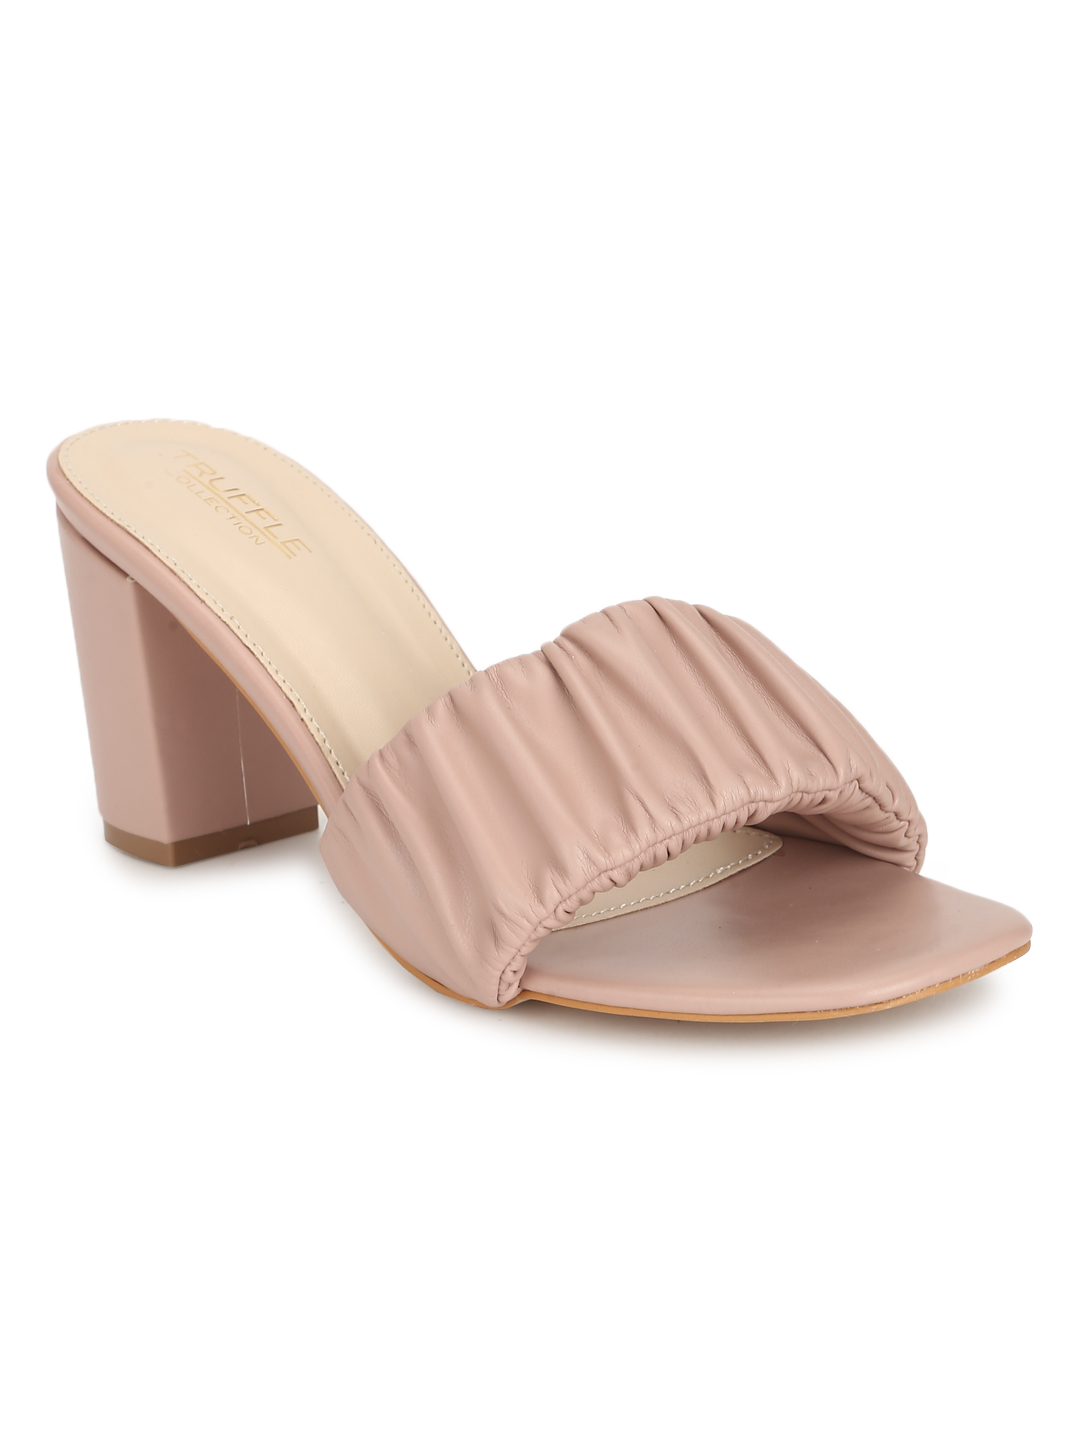 Truffle Collection | Pink PU Wrinkled Block Heel Sandals